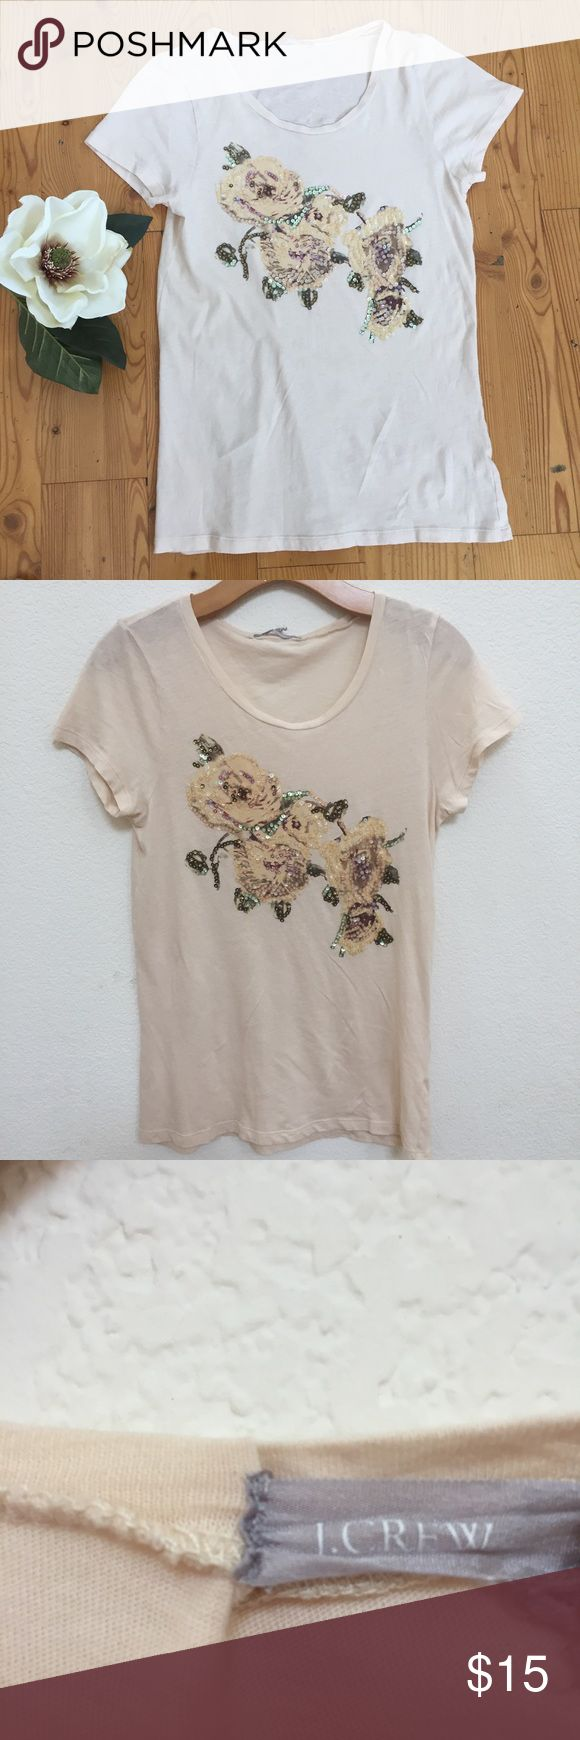 JCrew T Shirt Sz M Pre owned JCrew t-shirt, light peach color, short sleeves, very good condition, length 25, chest 16. J. Crew Tops Tees - Short Sleeve